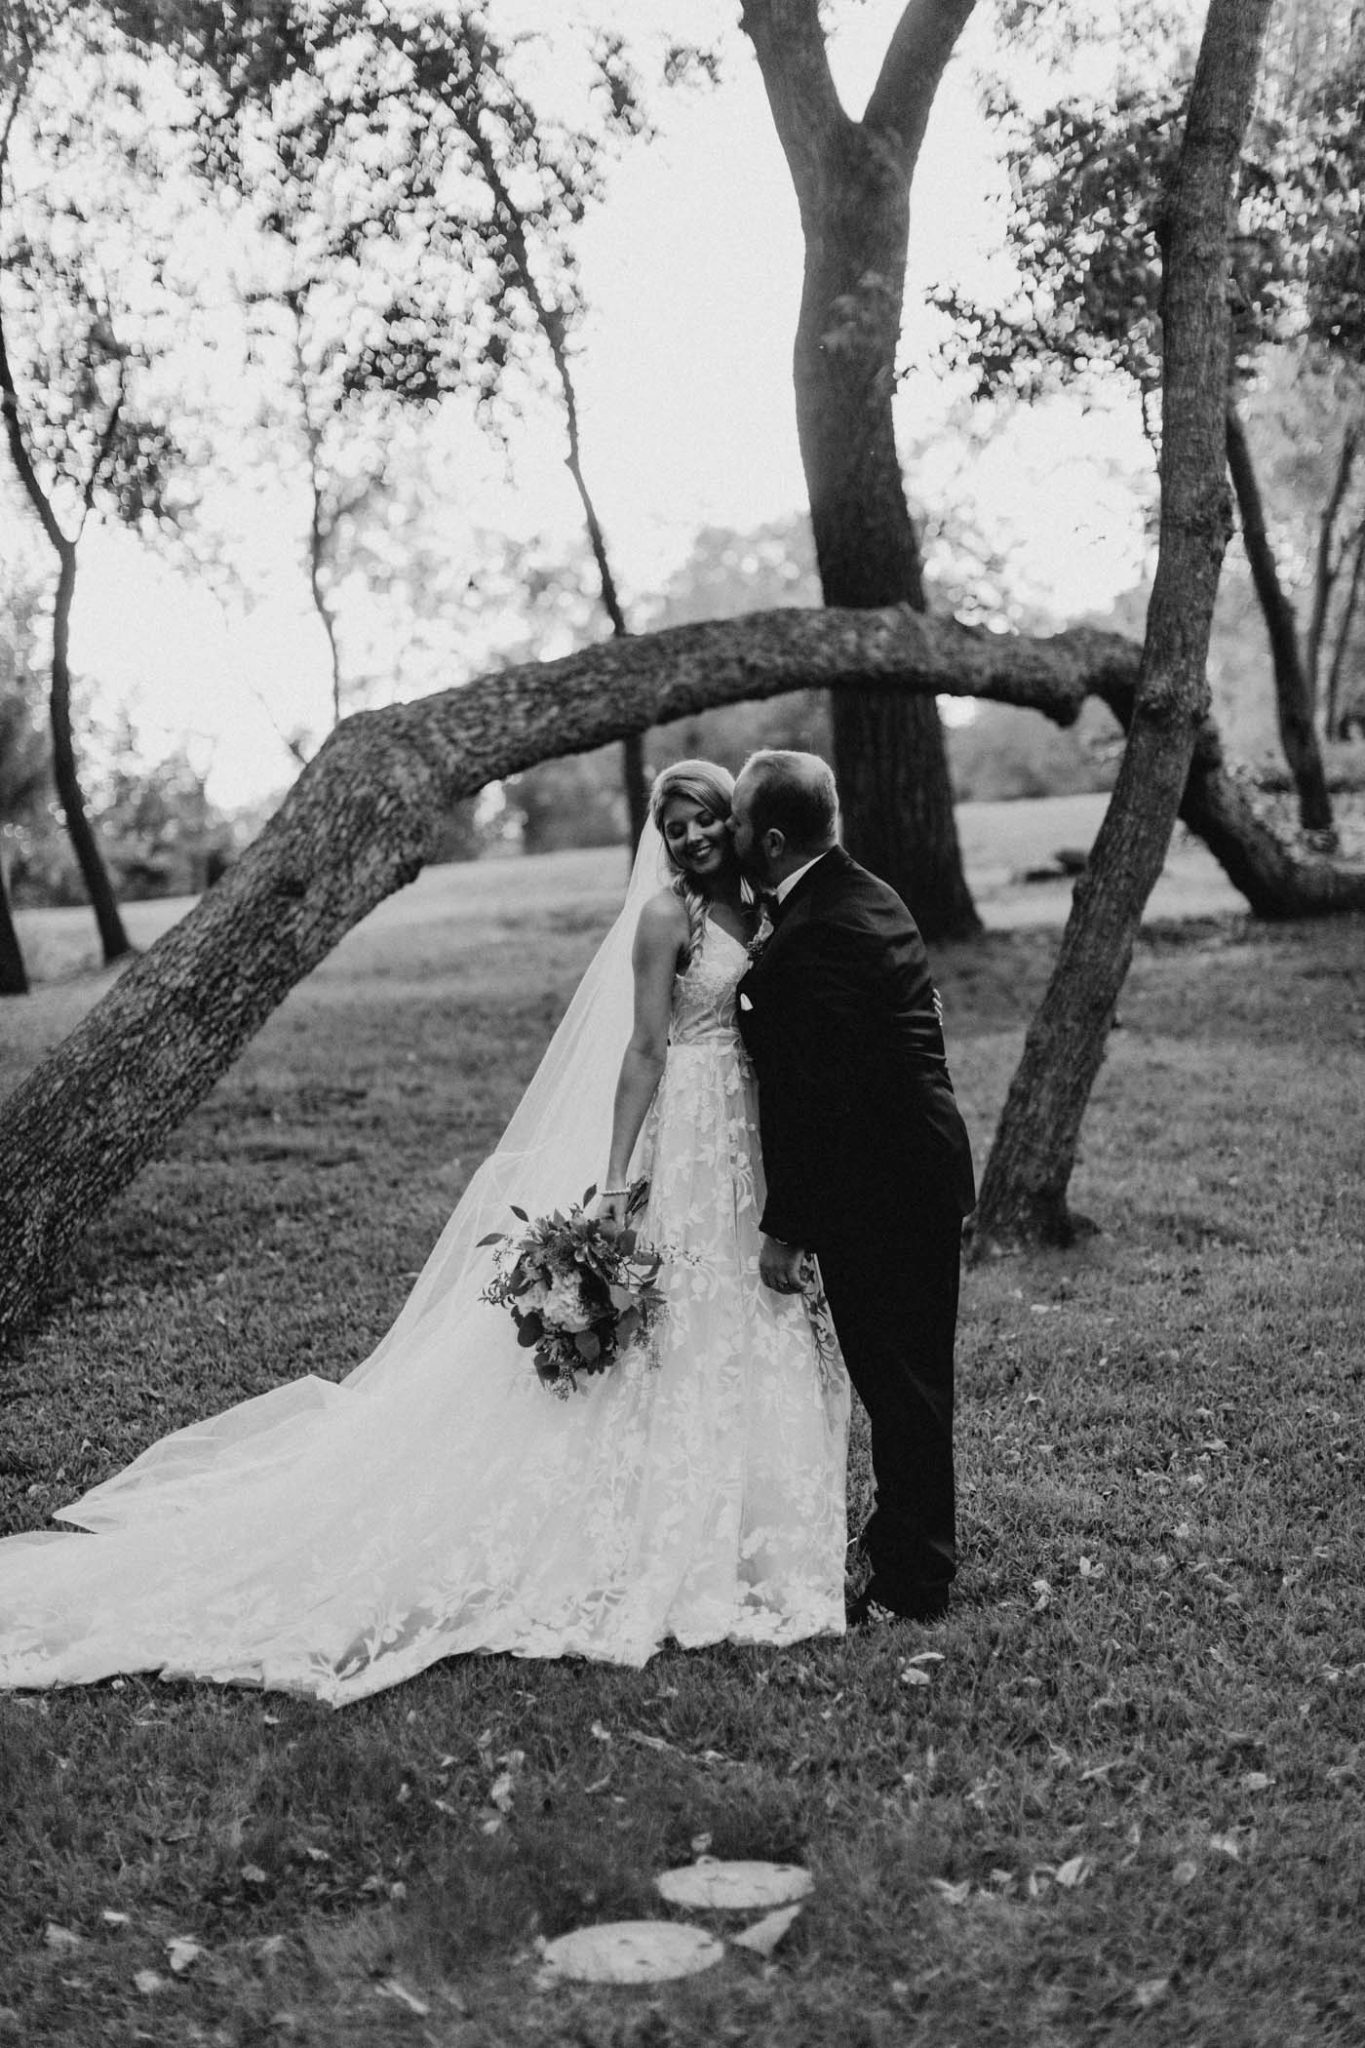 black and white intimate photo of bride and groom after wedding ceremony